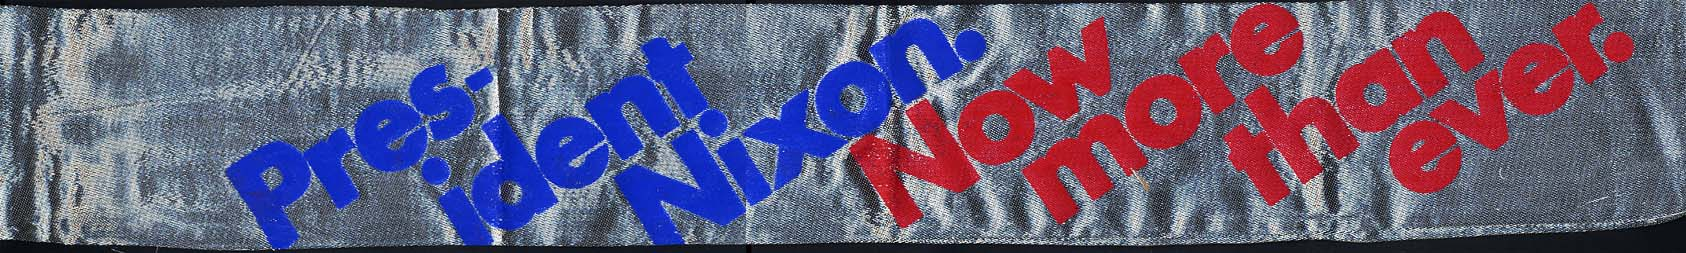 President Nixon Now More Than Ever 1972 Re-election cloth campaign sash